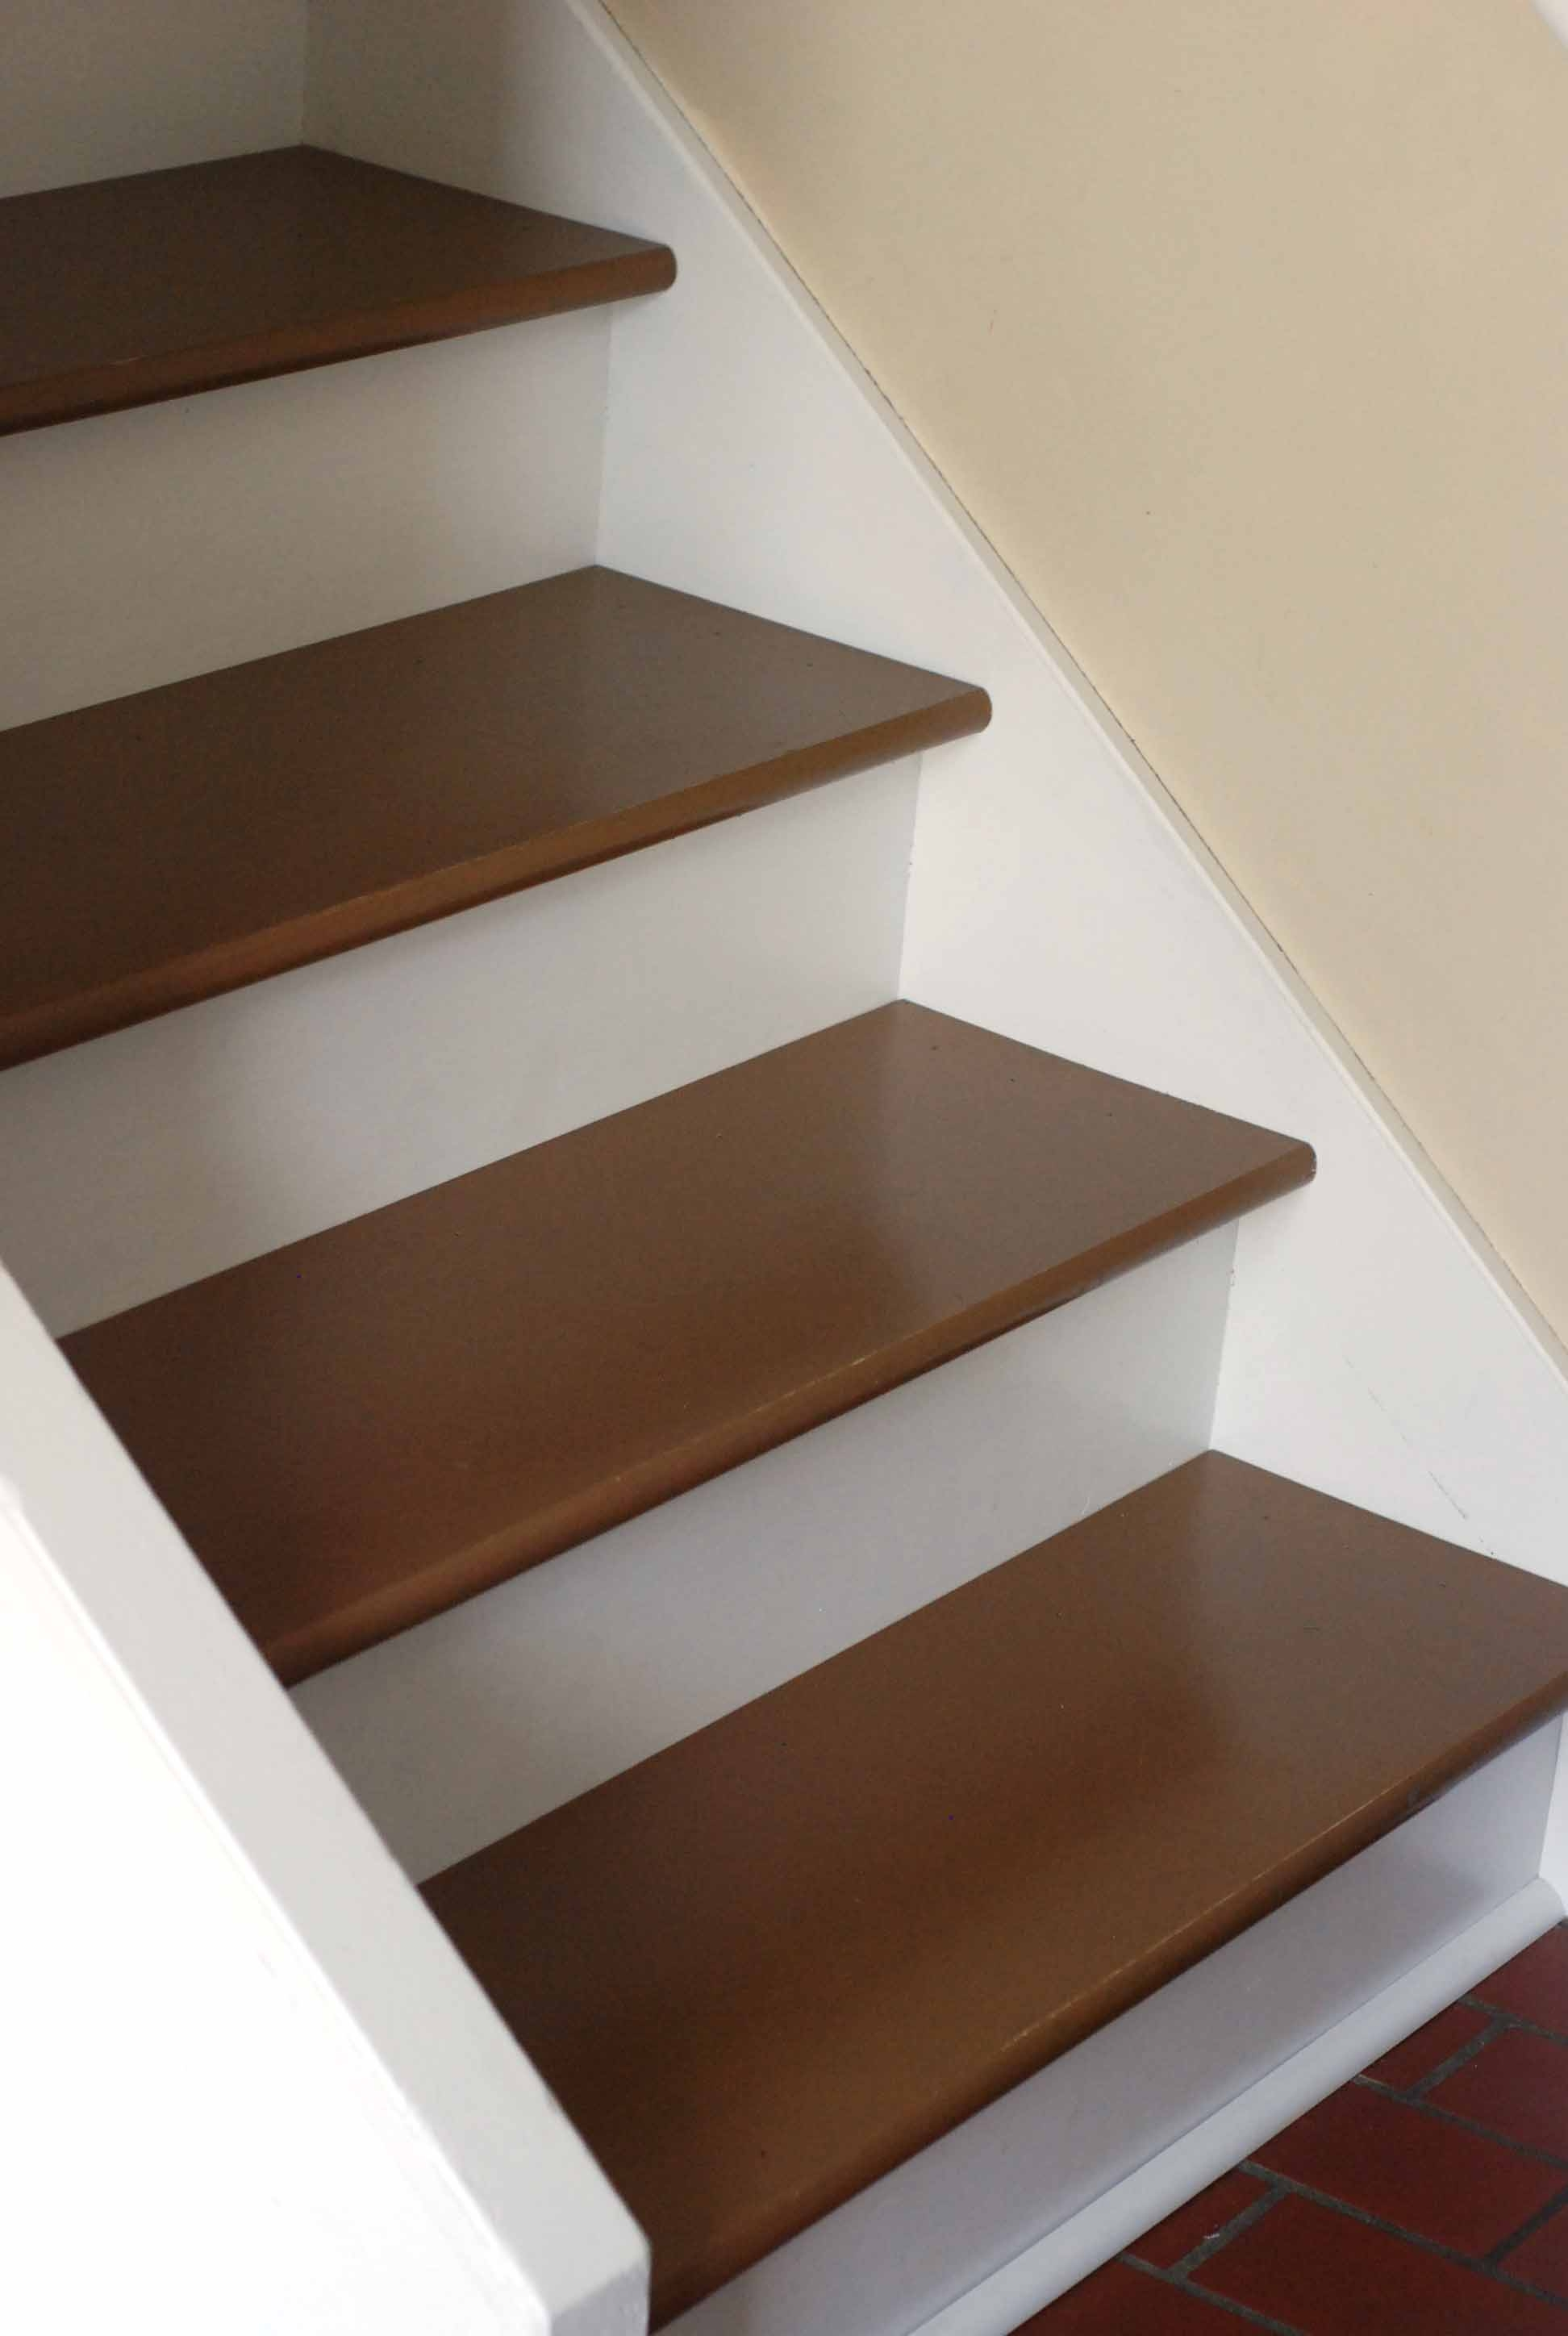 Stair Tread Covers Ideas About Stair Treads On Pinterest Carpet Throughout Brown Stair Treads (#18 of 20)